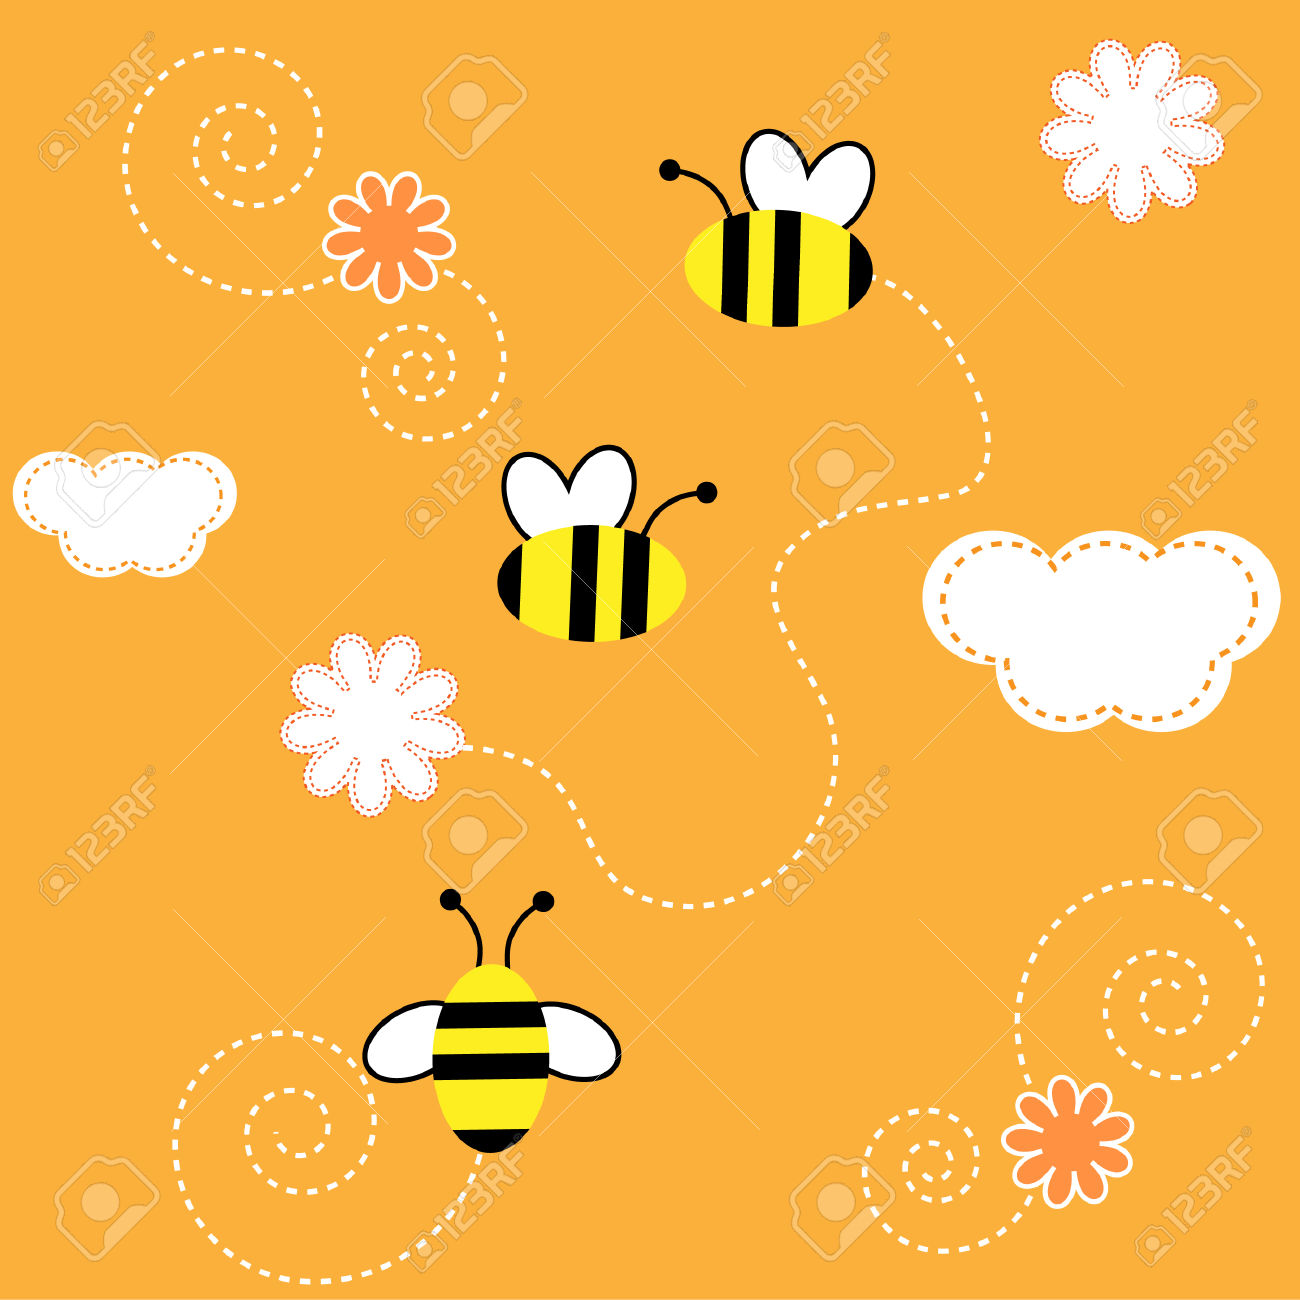 The Background Seamless .The Bees Collect The Pollen With Flower.